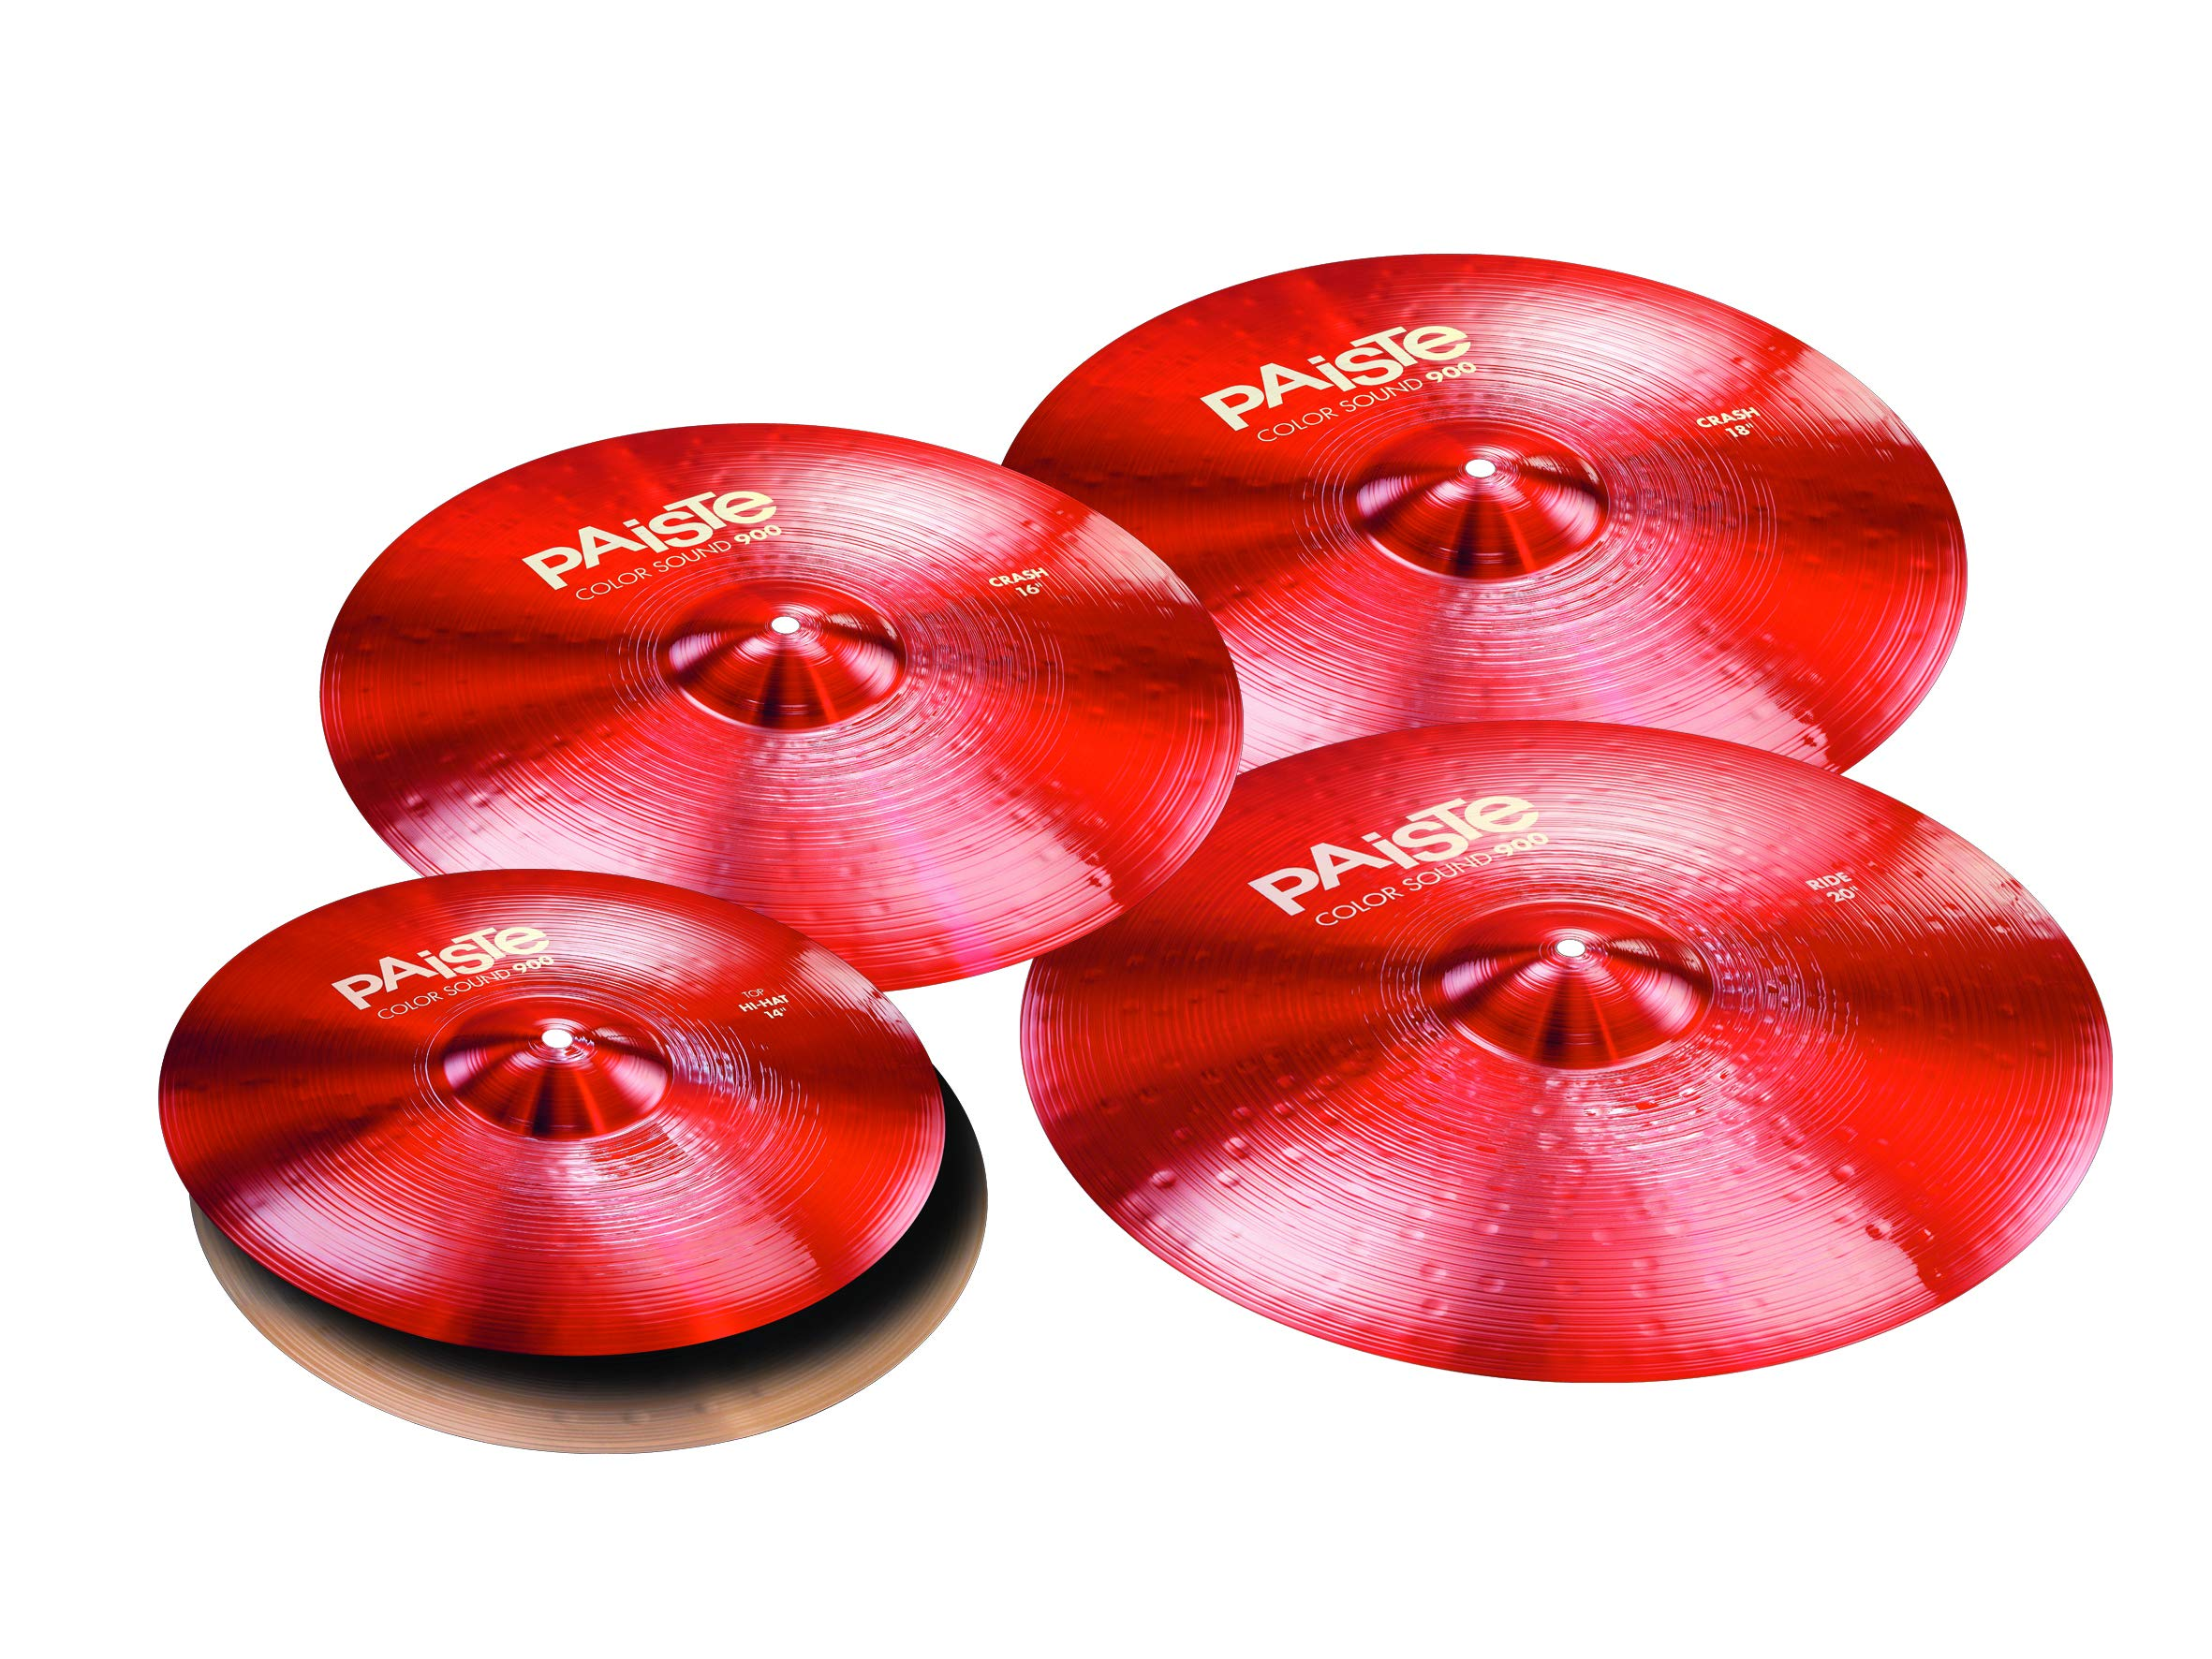 Paiste Color Sound 900 Series Medium Cymbal Set Extended Even w/Free 16'' Crash (Red) by Paiste